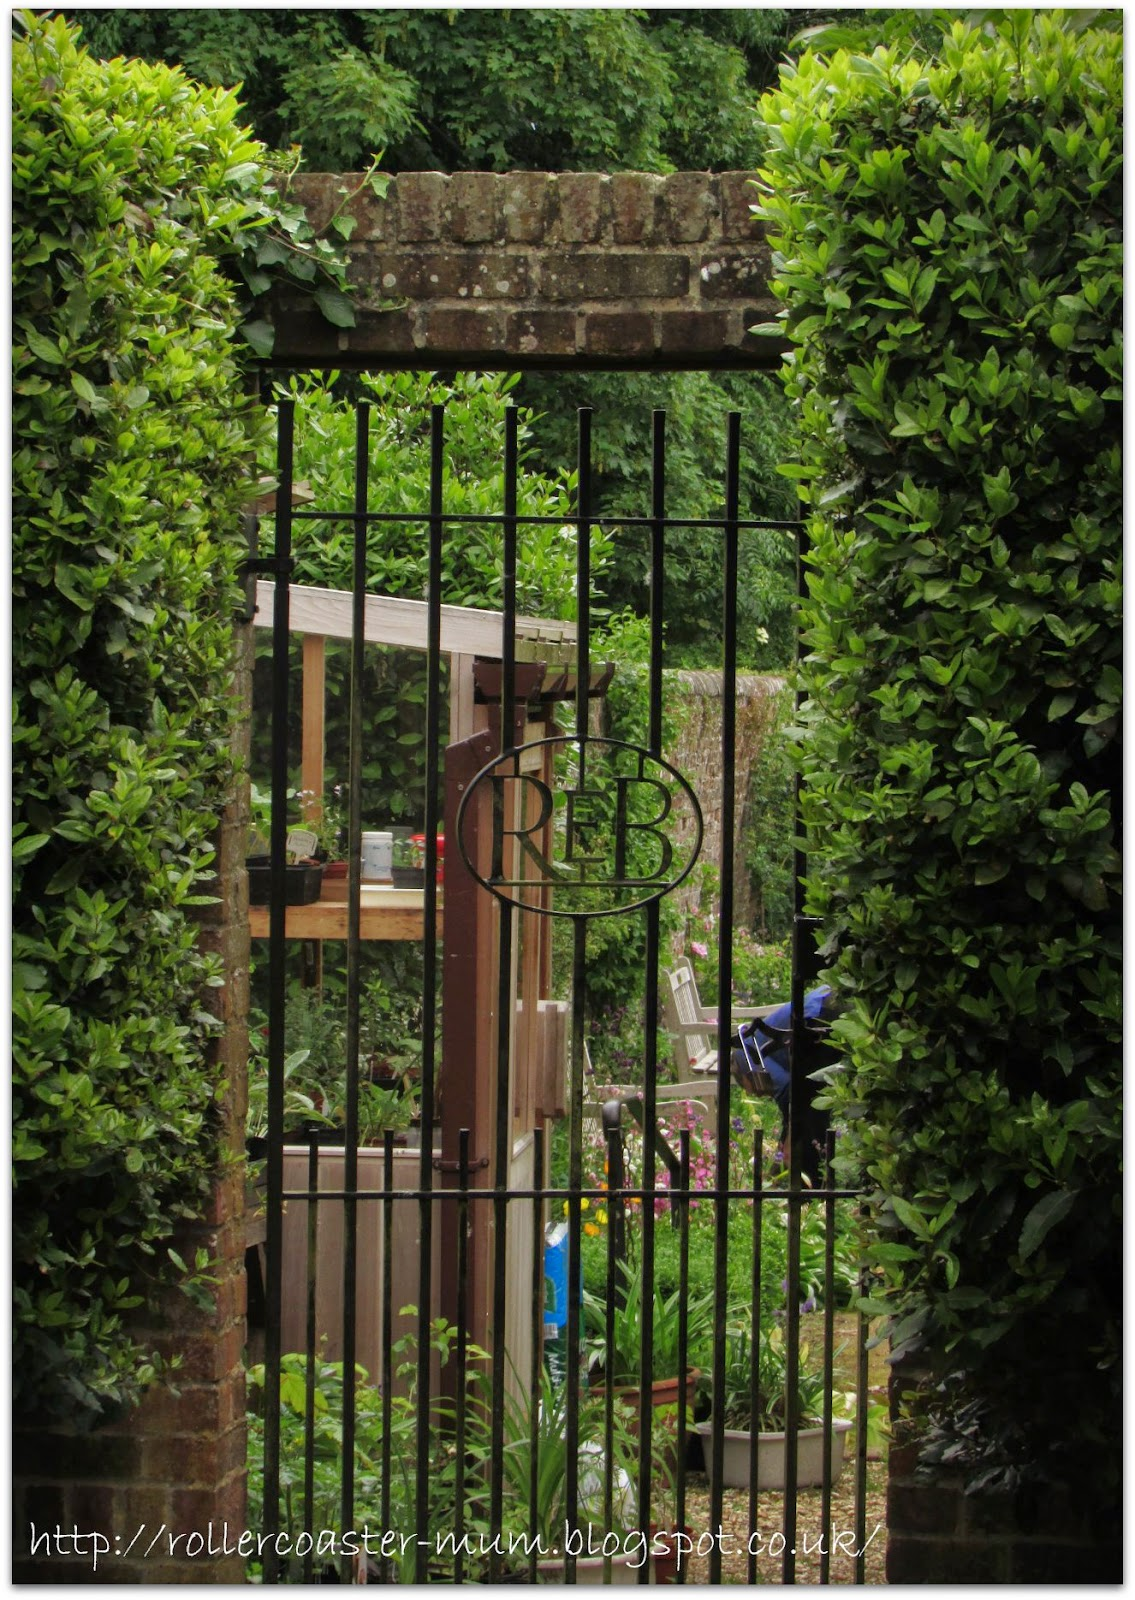 #alphabetphoto, G is for Garden, Petersfield Physic Garden, gate